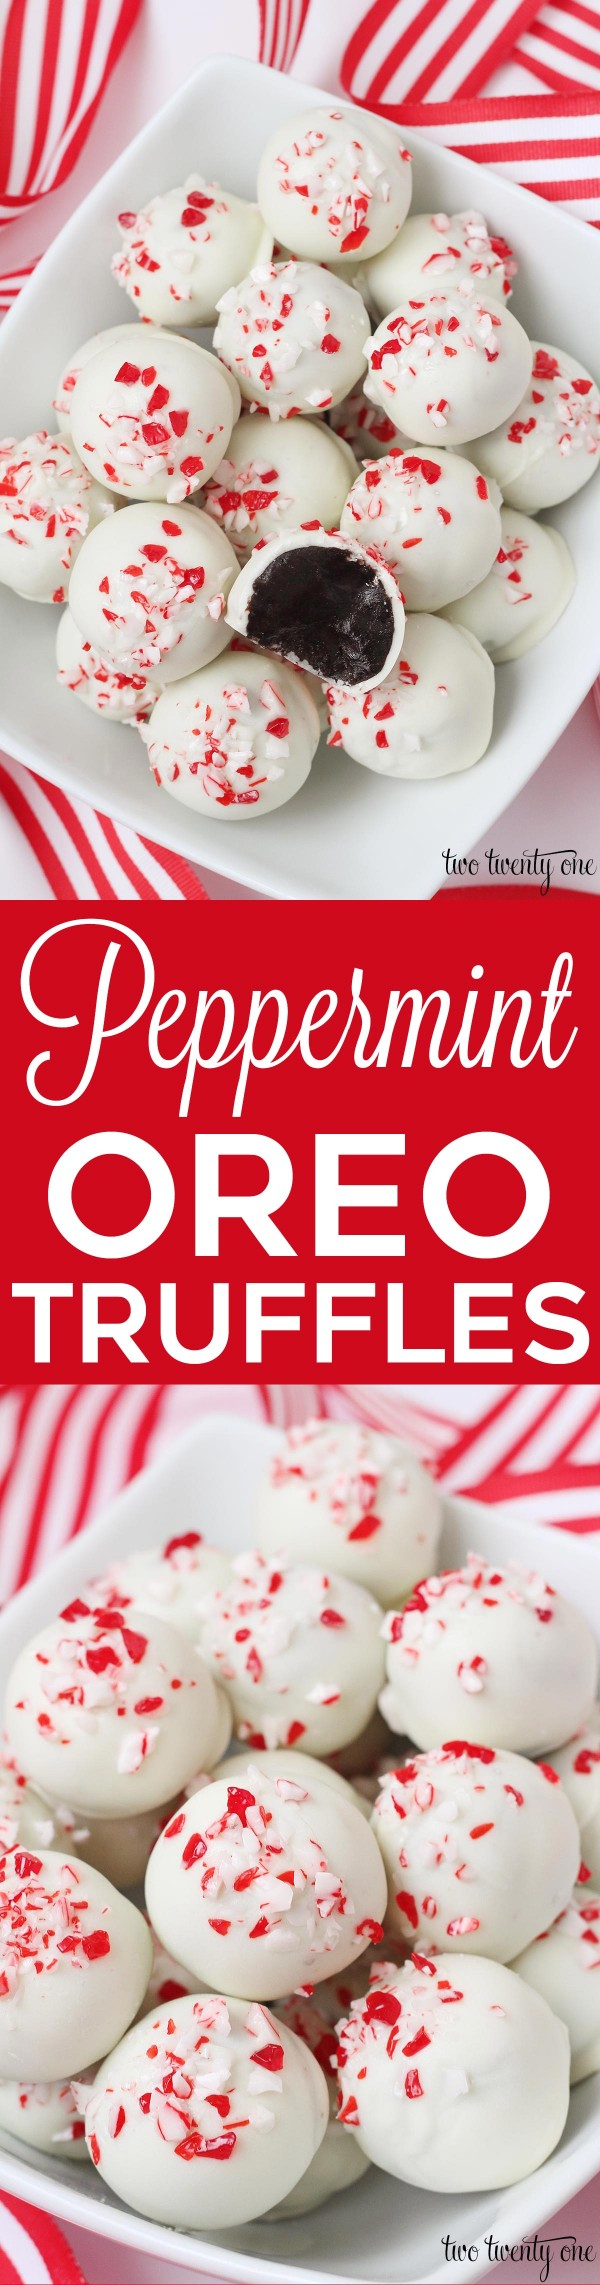 Get the recipe Peppermint Oreo Truffles @recipes_to_go